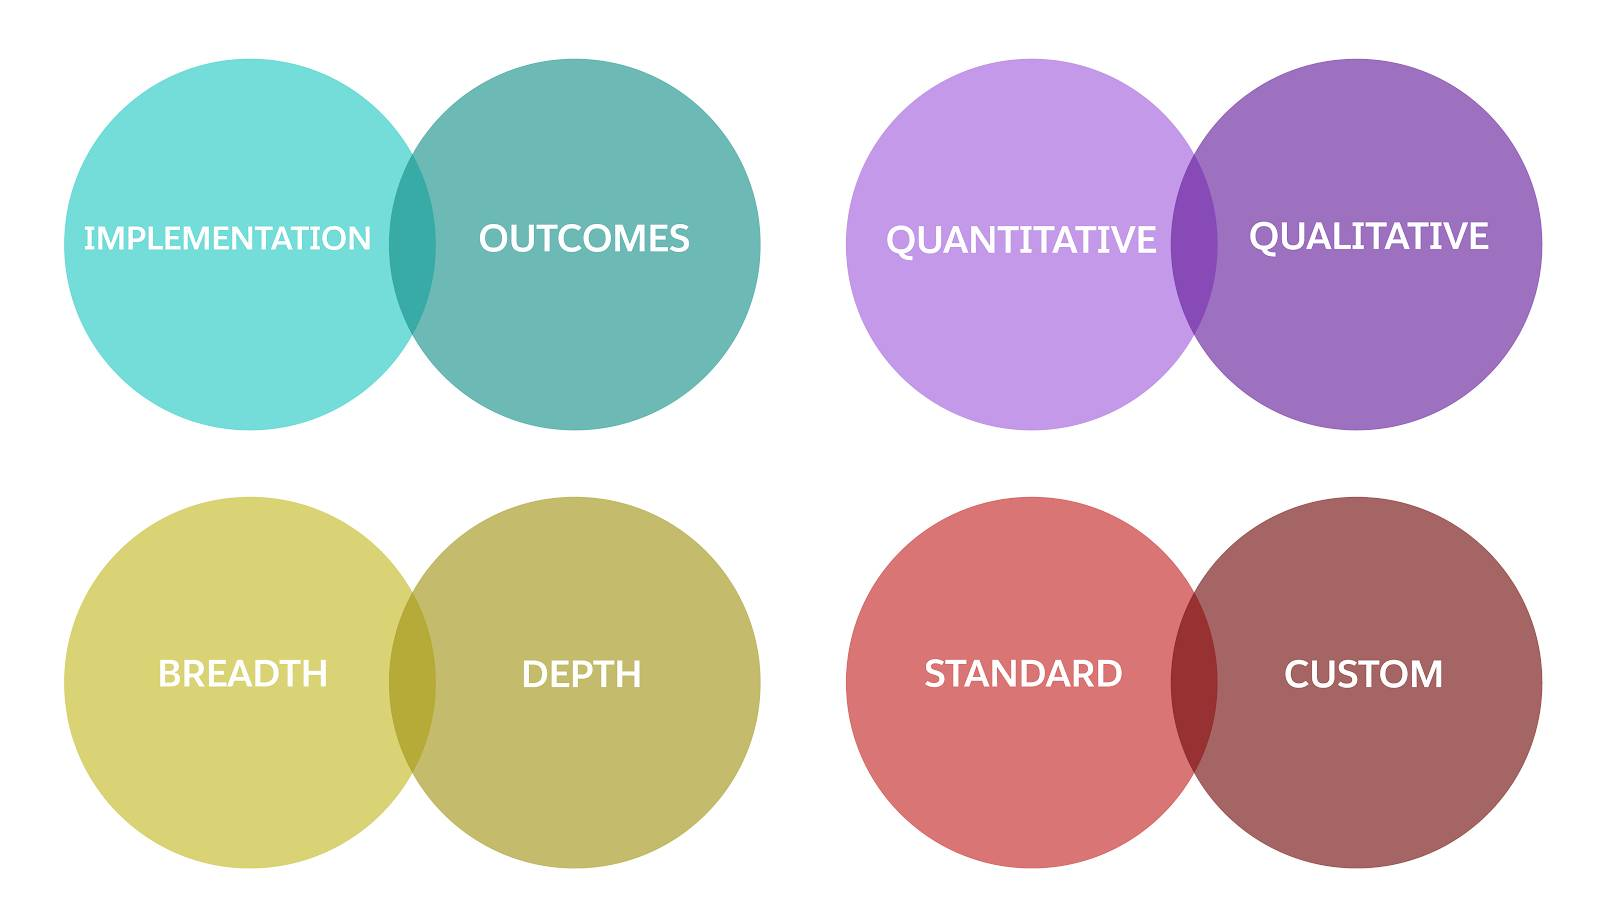 Metric categories that overlap, including Implementation and Outcome, Quantitative and Qualitative, Breadth and Depth, and Standard and Custom